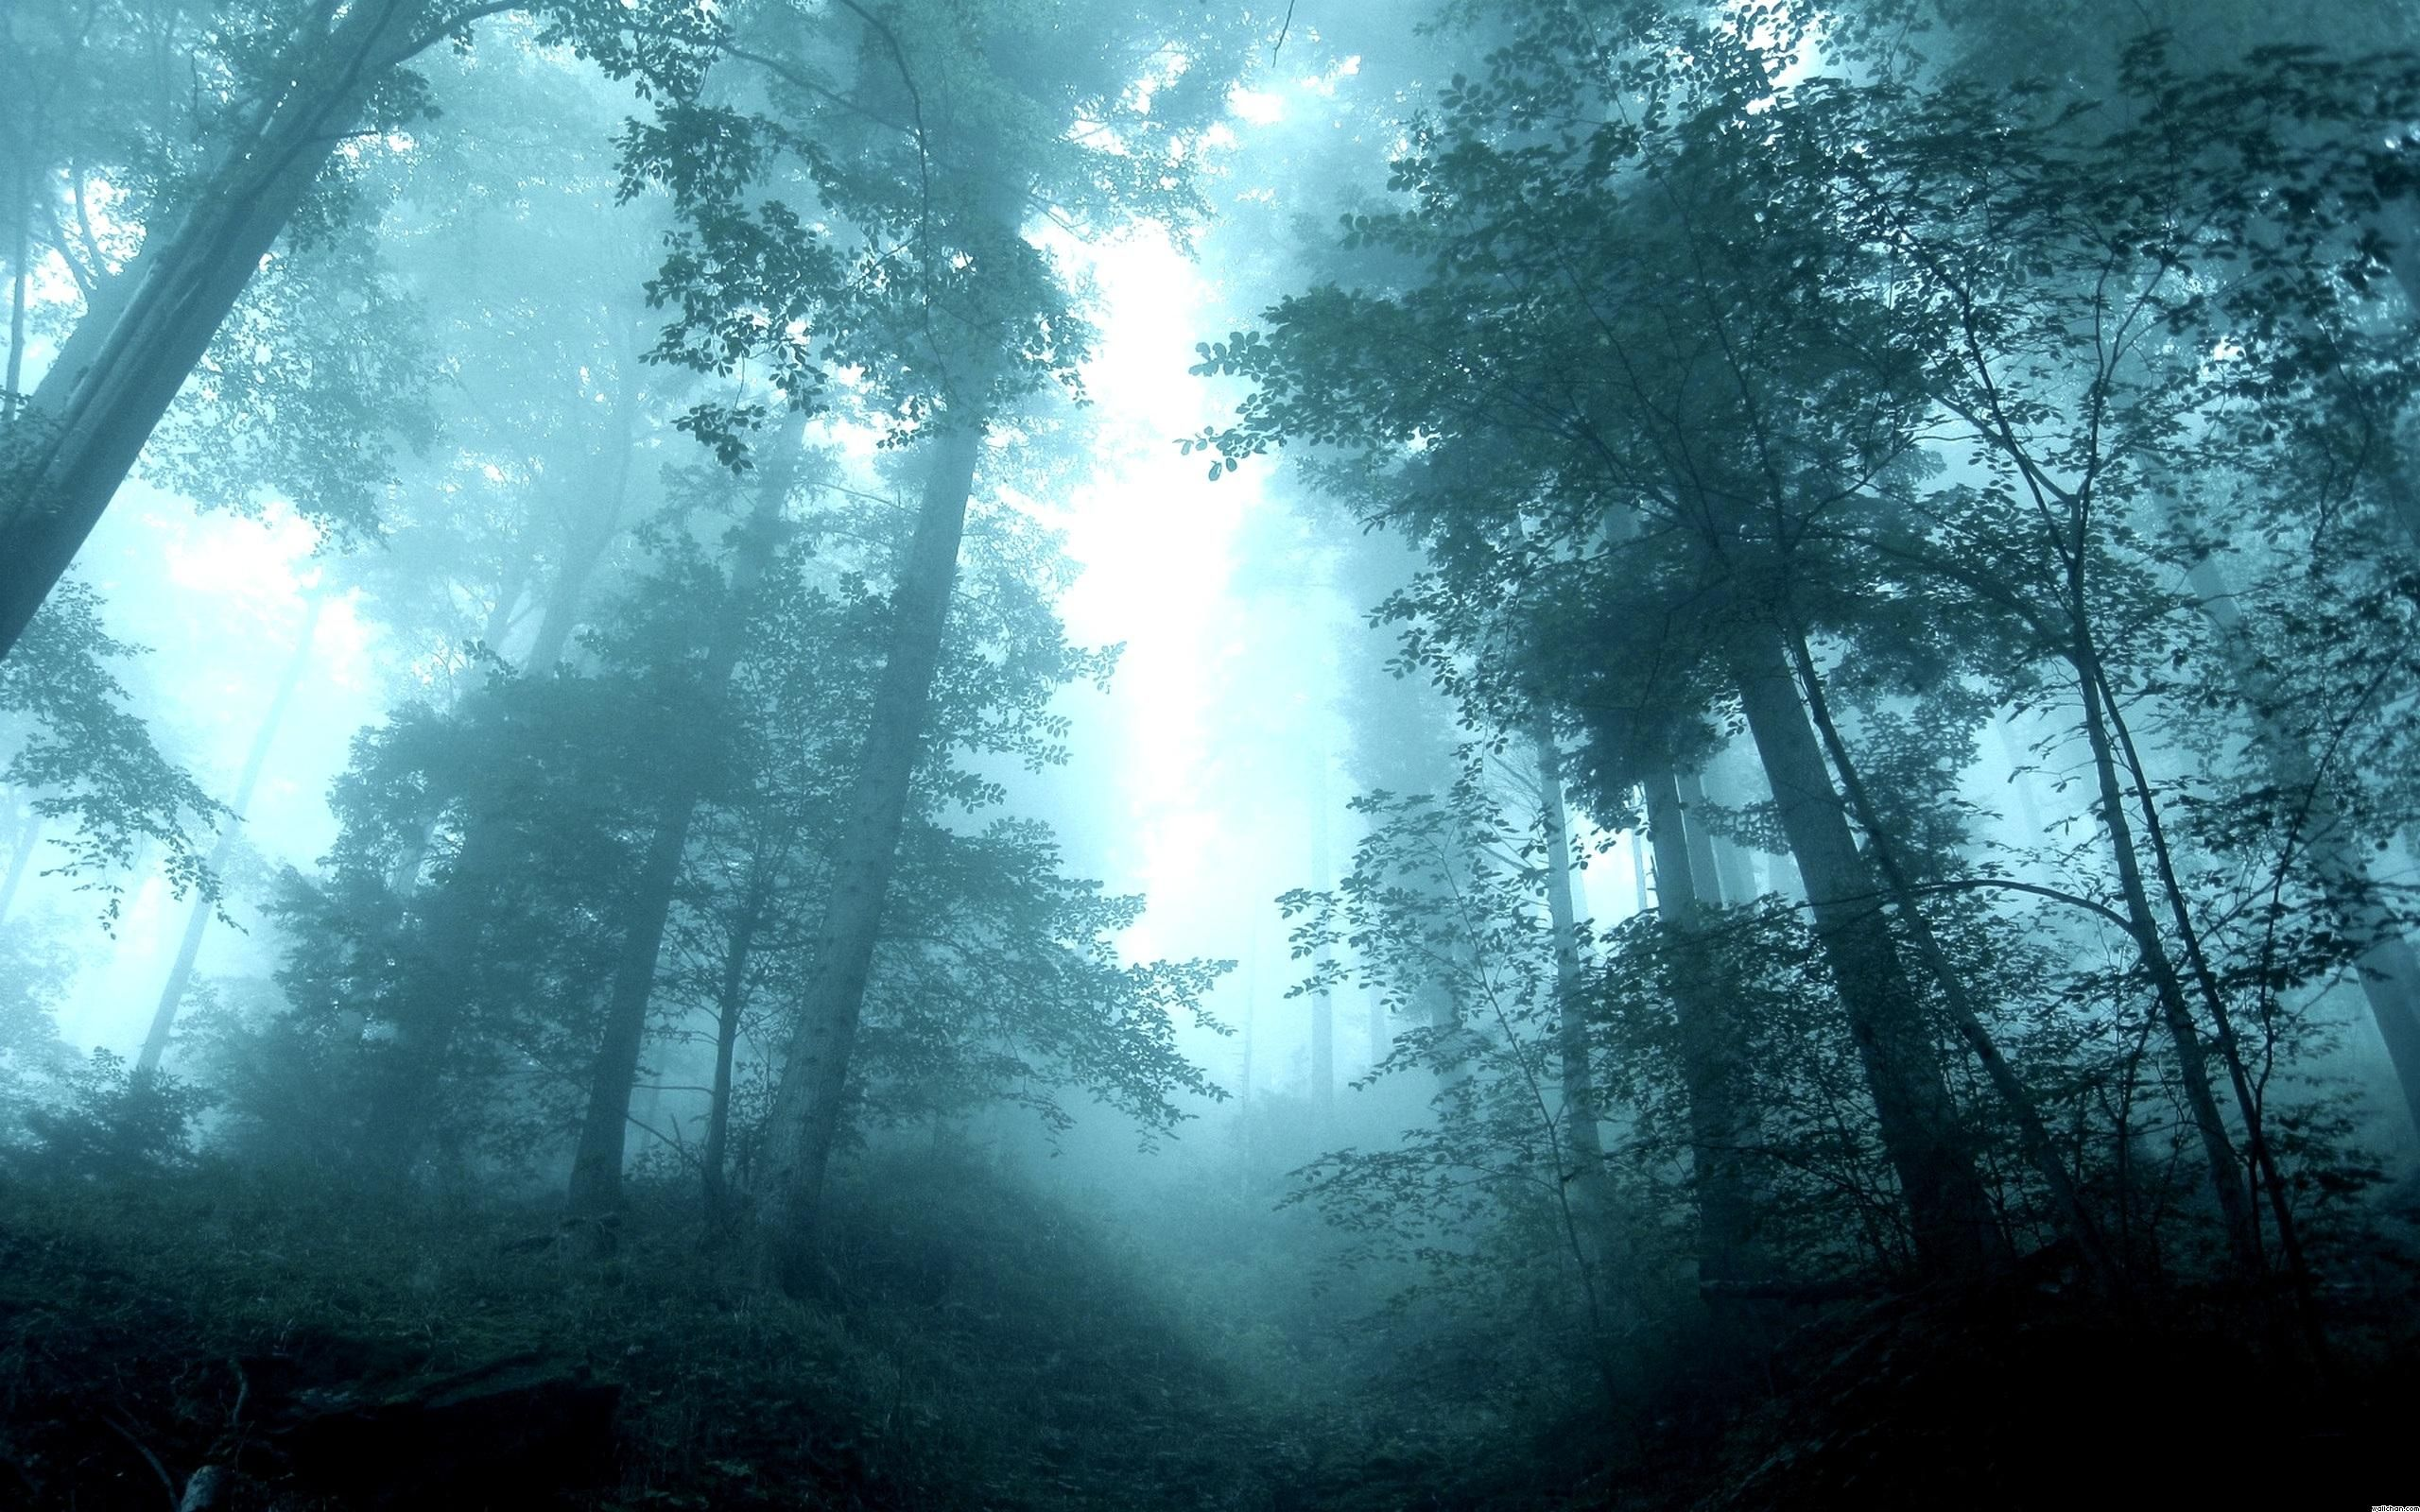 Wallpapers Into The Mist Hd In Forest 2560x1600 653071